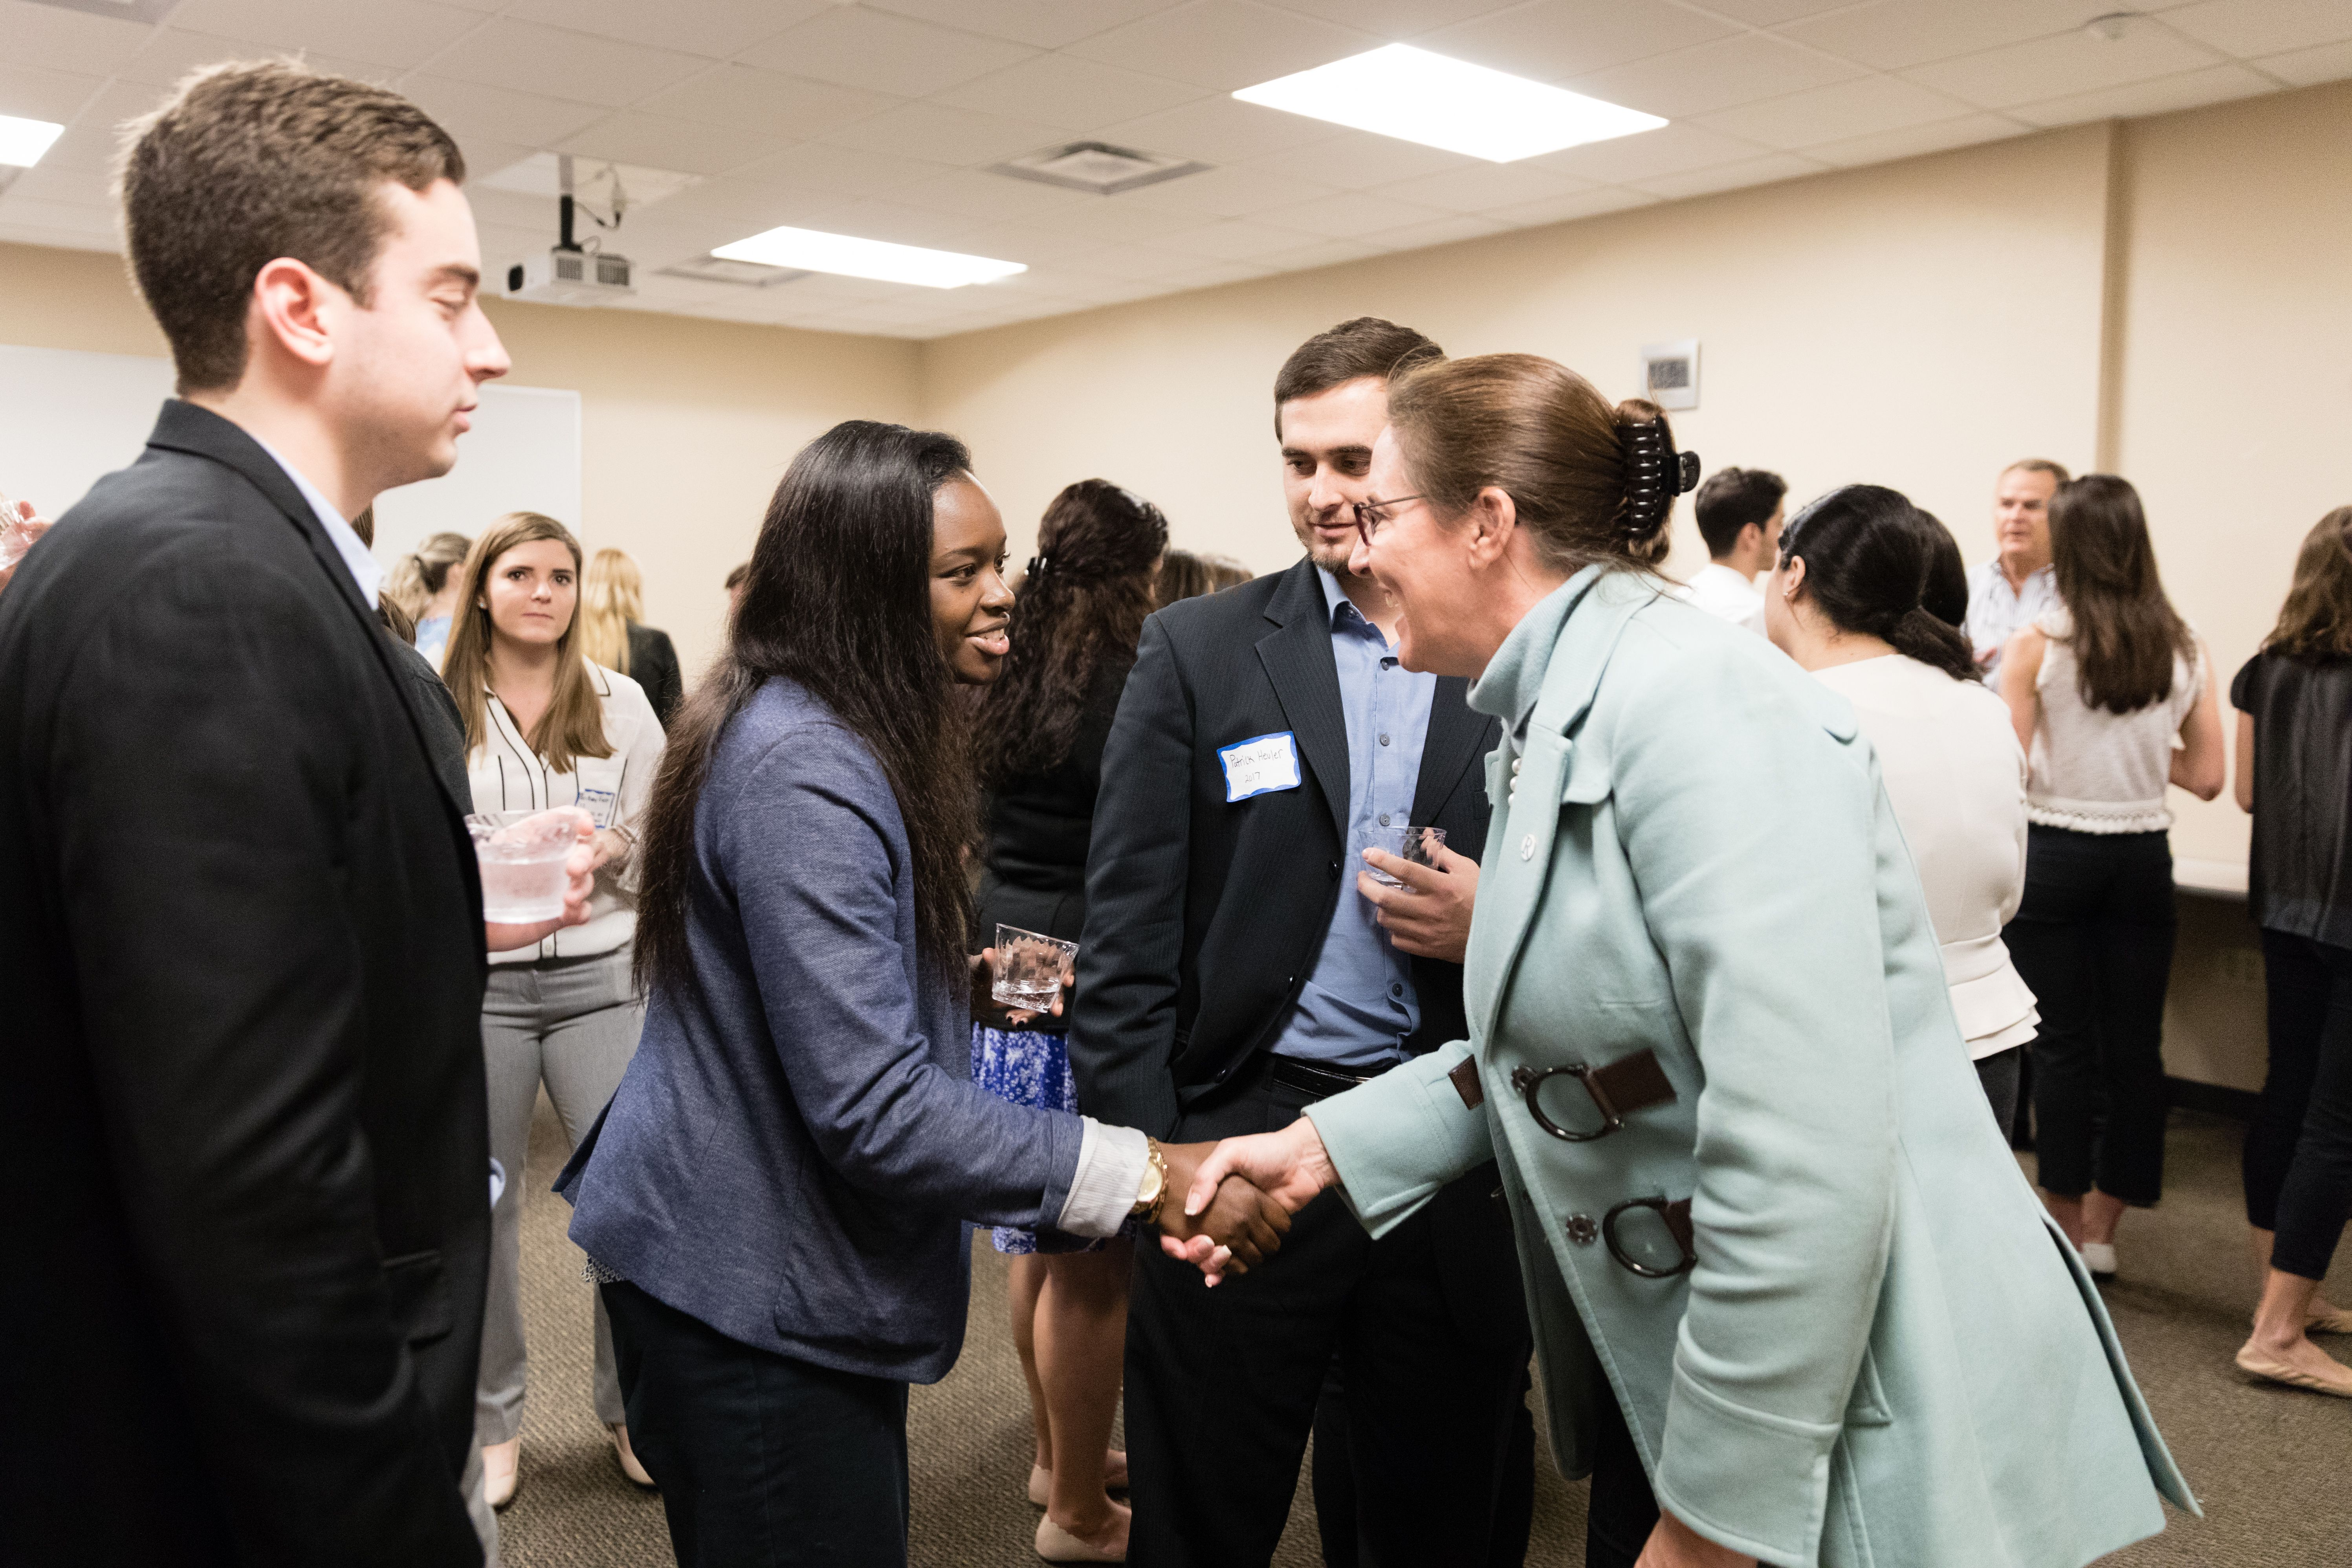 Students shake hands at a networking event.